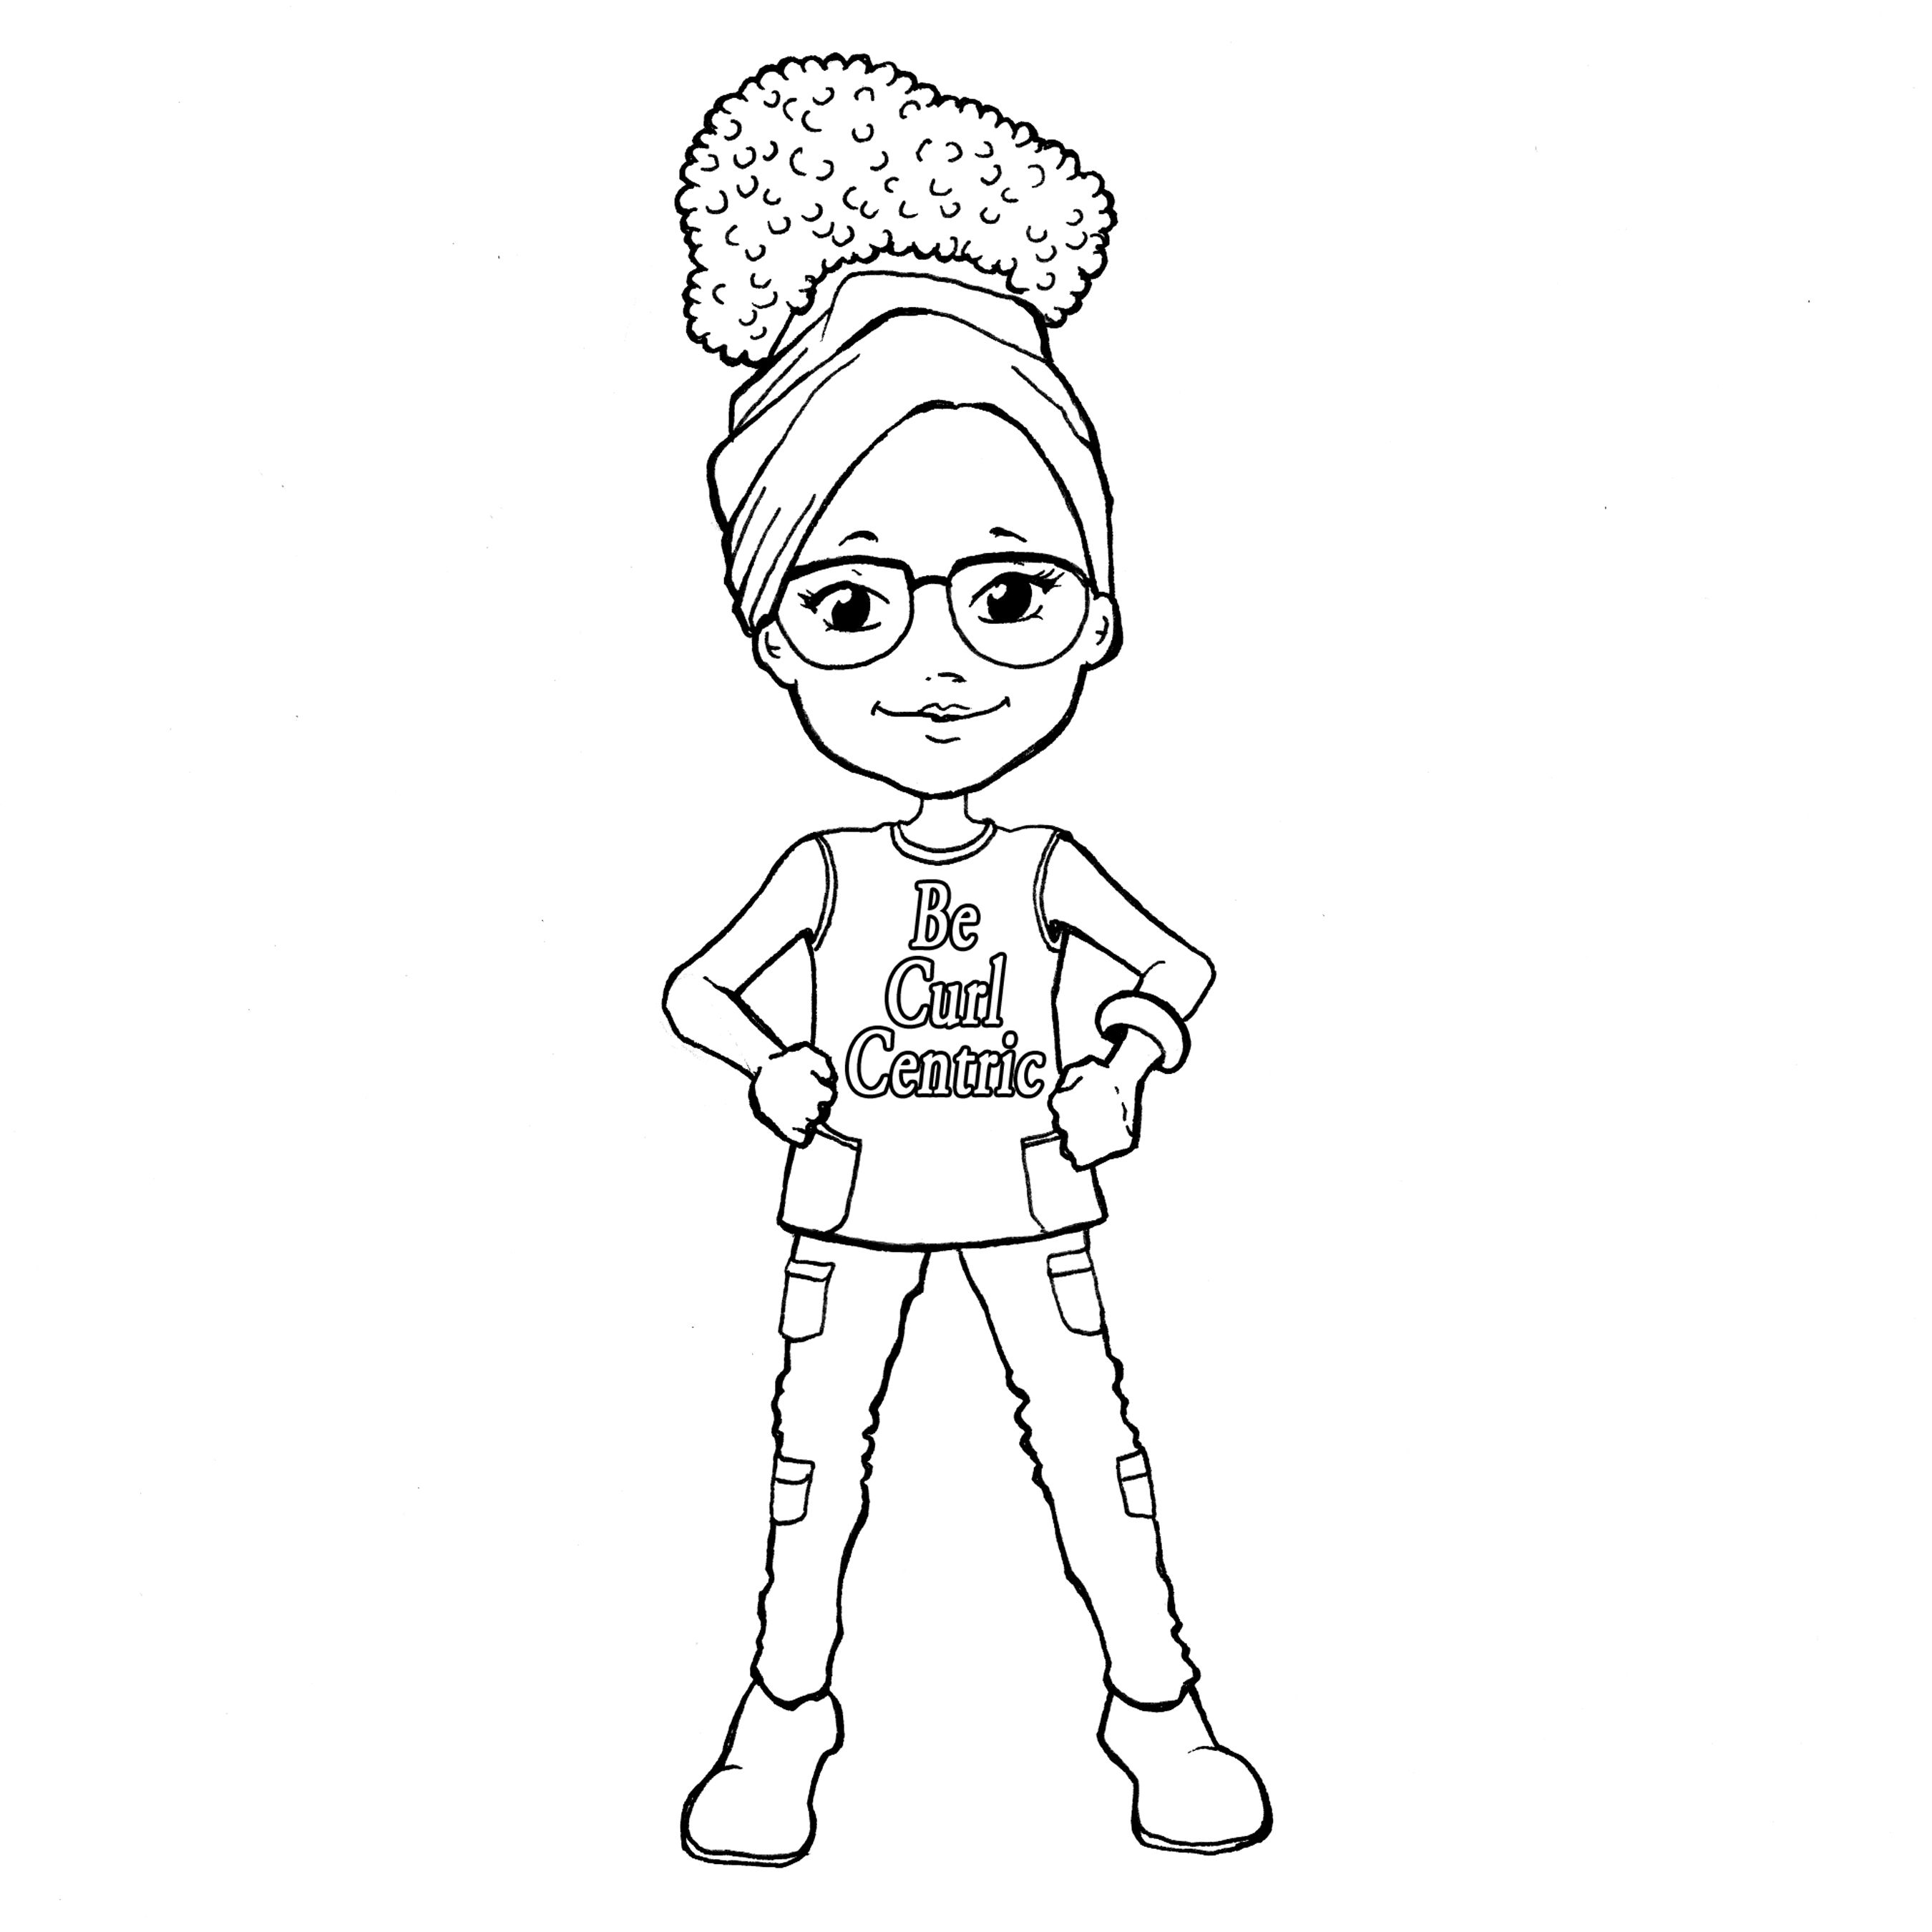 Ybnkids A New Coloring Book For Curly Cuties Free Download Coloring Pages For Girls Coloring Pages Coloring Books